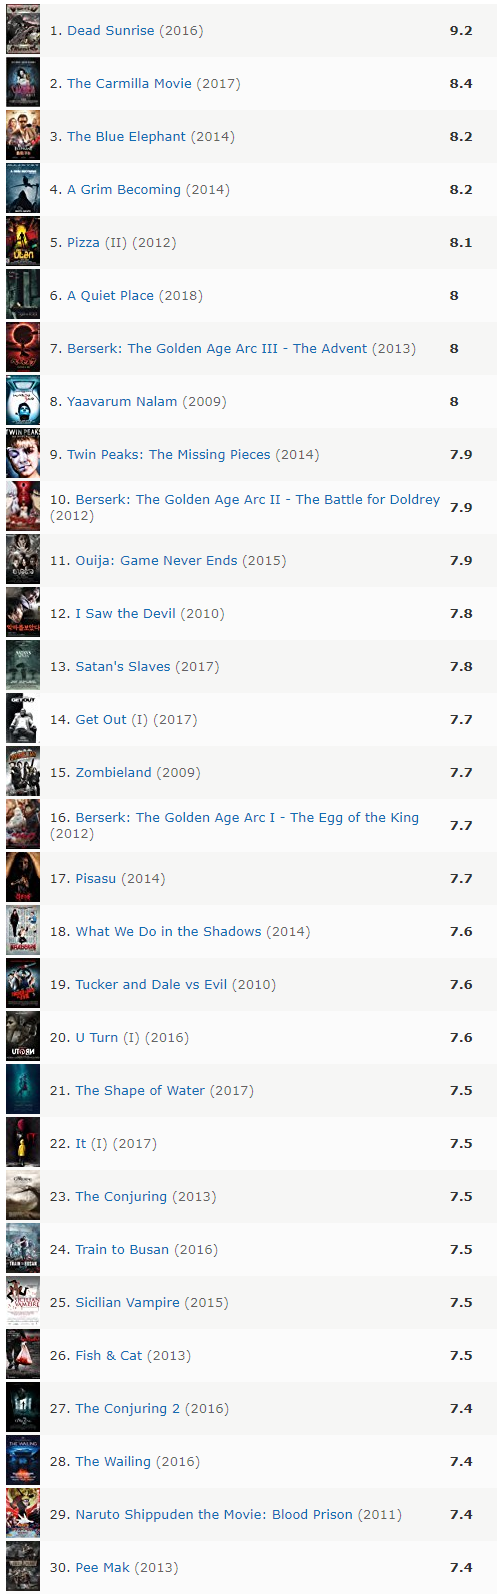 What is the best horror movie made in the last 10 years? - Quora